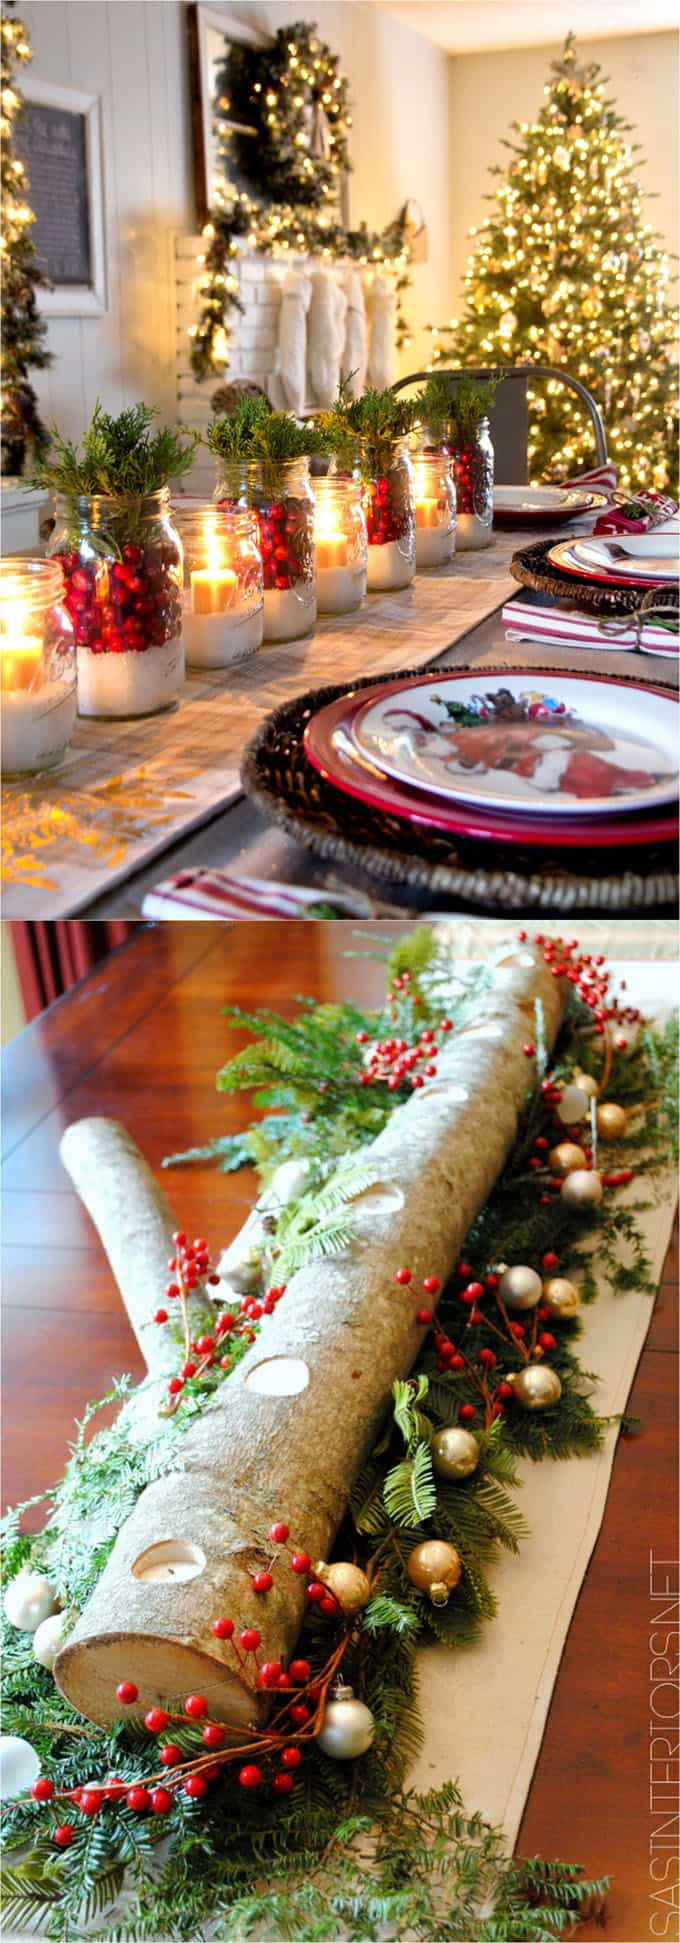 27 gorgeous easy diy thanksgiving and christmas table decorations centerpieces most can be - Christmas Table Decorations Centerpieces